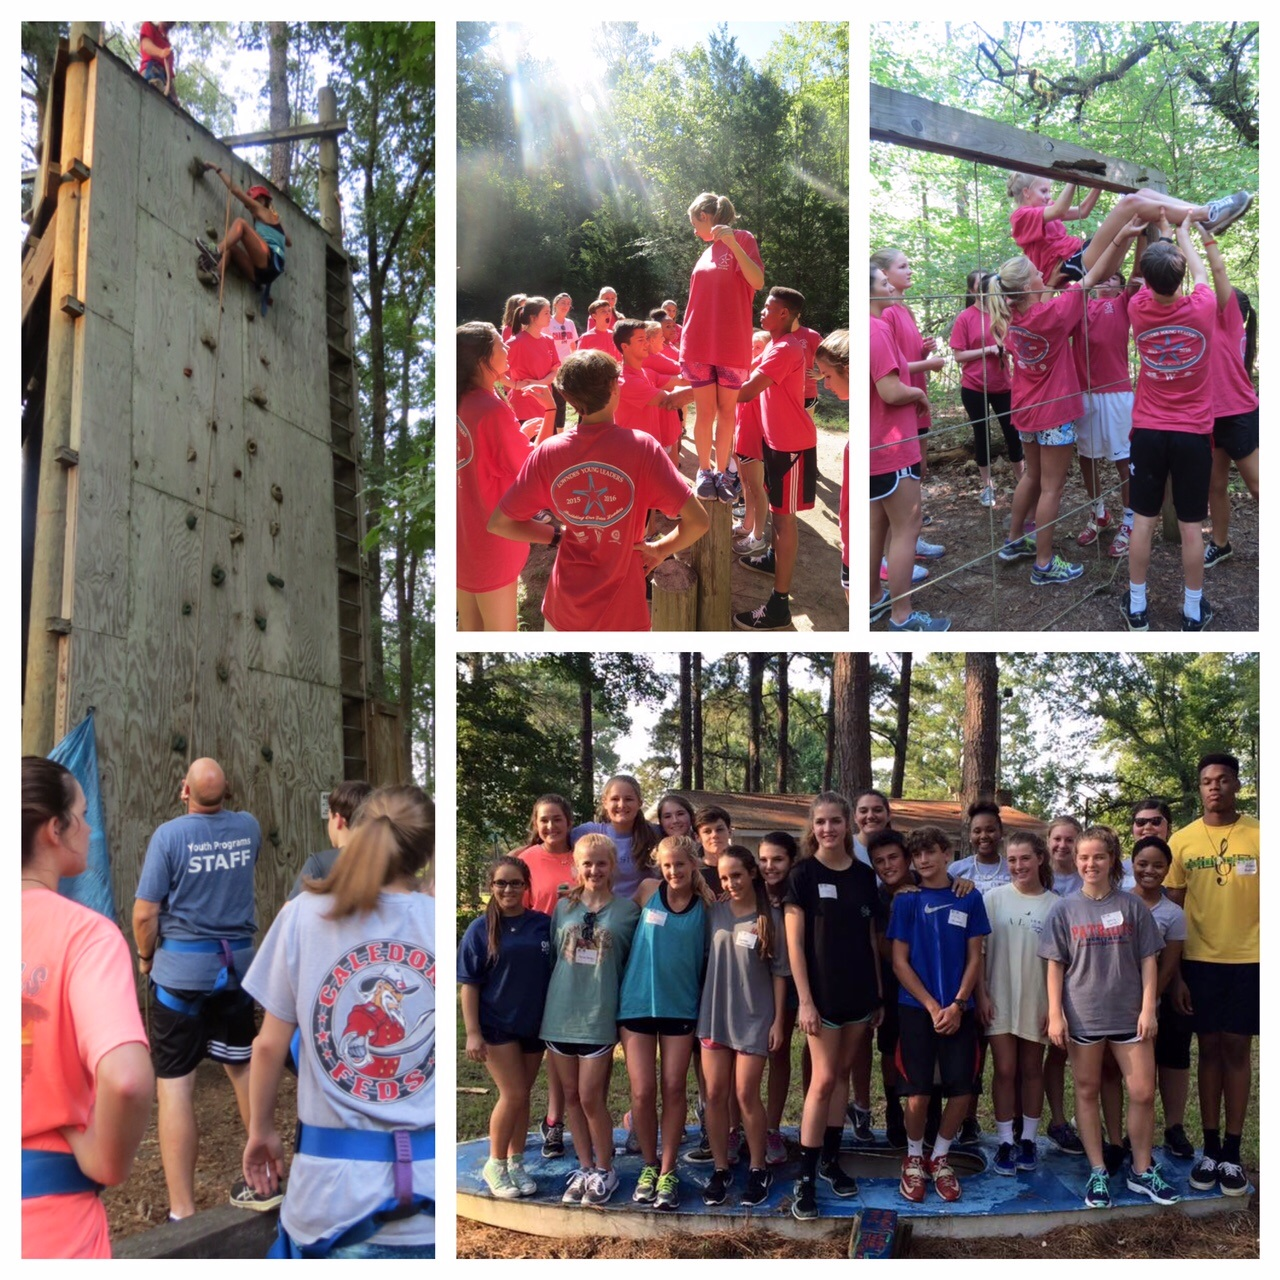 photo collage of young people at a climbing wall